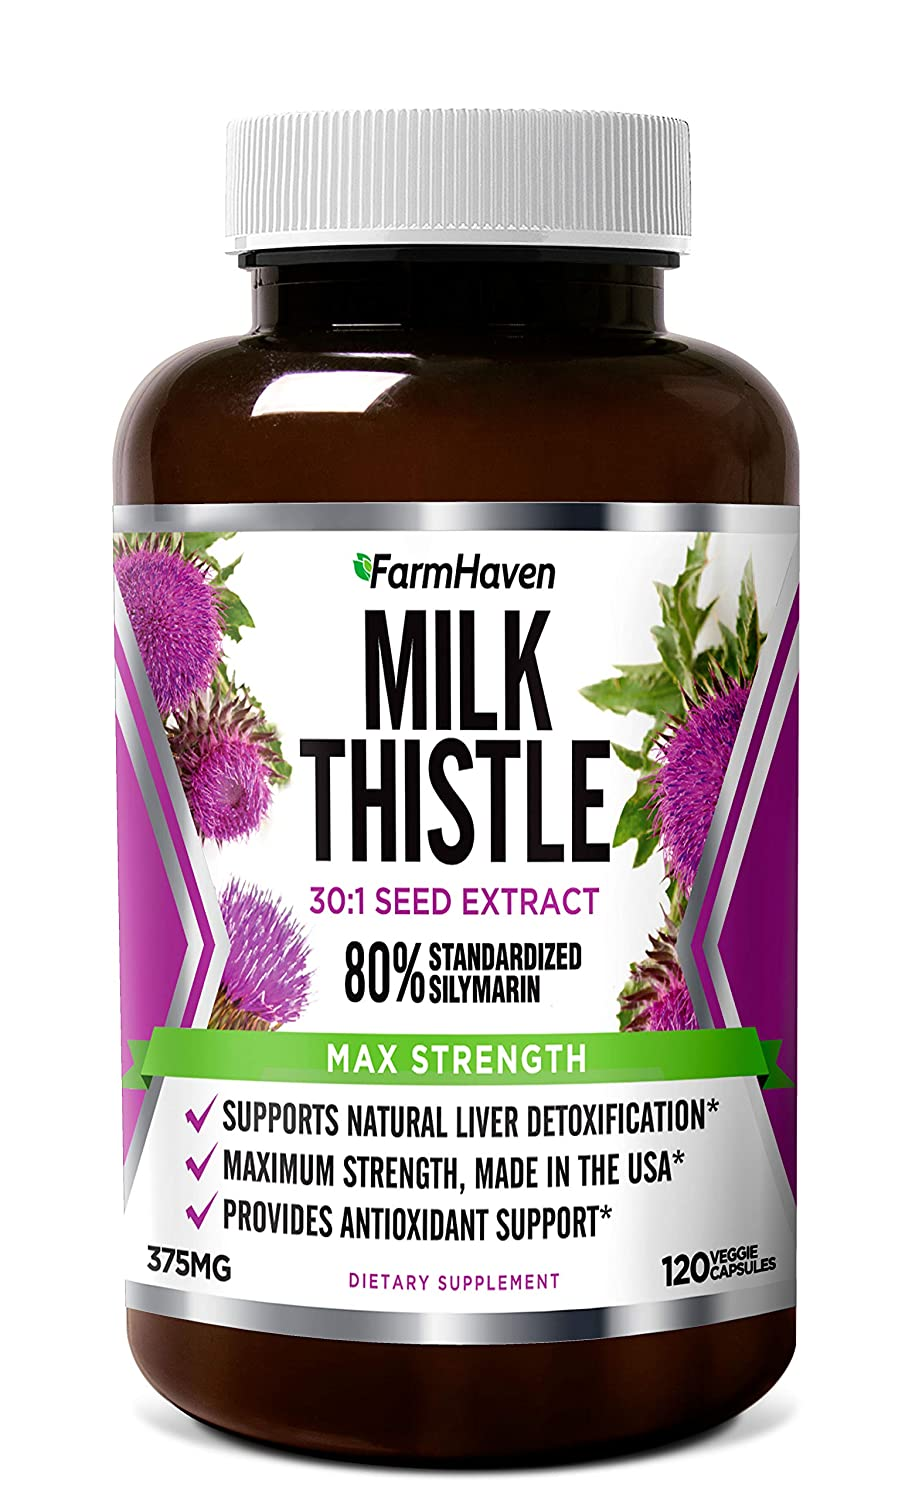 FarmHaven Milk Thistle Capsules | 11250mg Strength | 30X Concentrated Seed Extract & 80% Silymarin Standardized - Supports Liver Function and Overall Health | Non-GMO | 120 Veggie Capsules